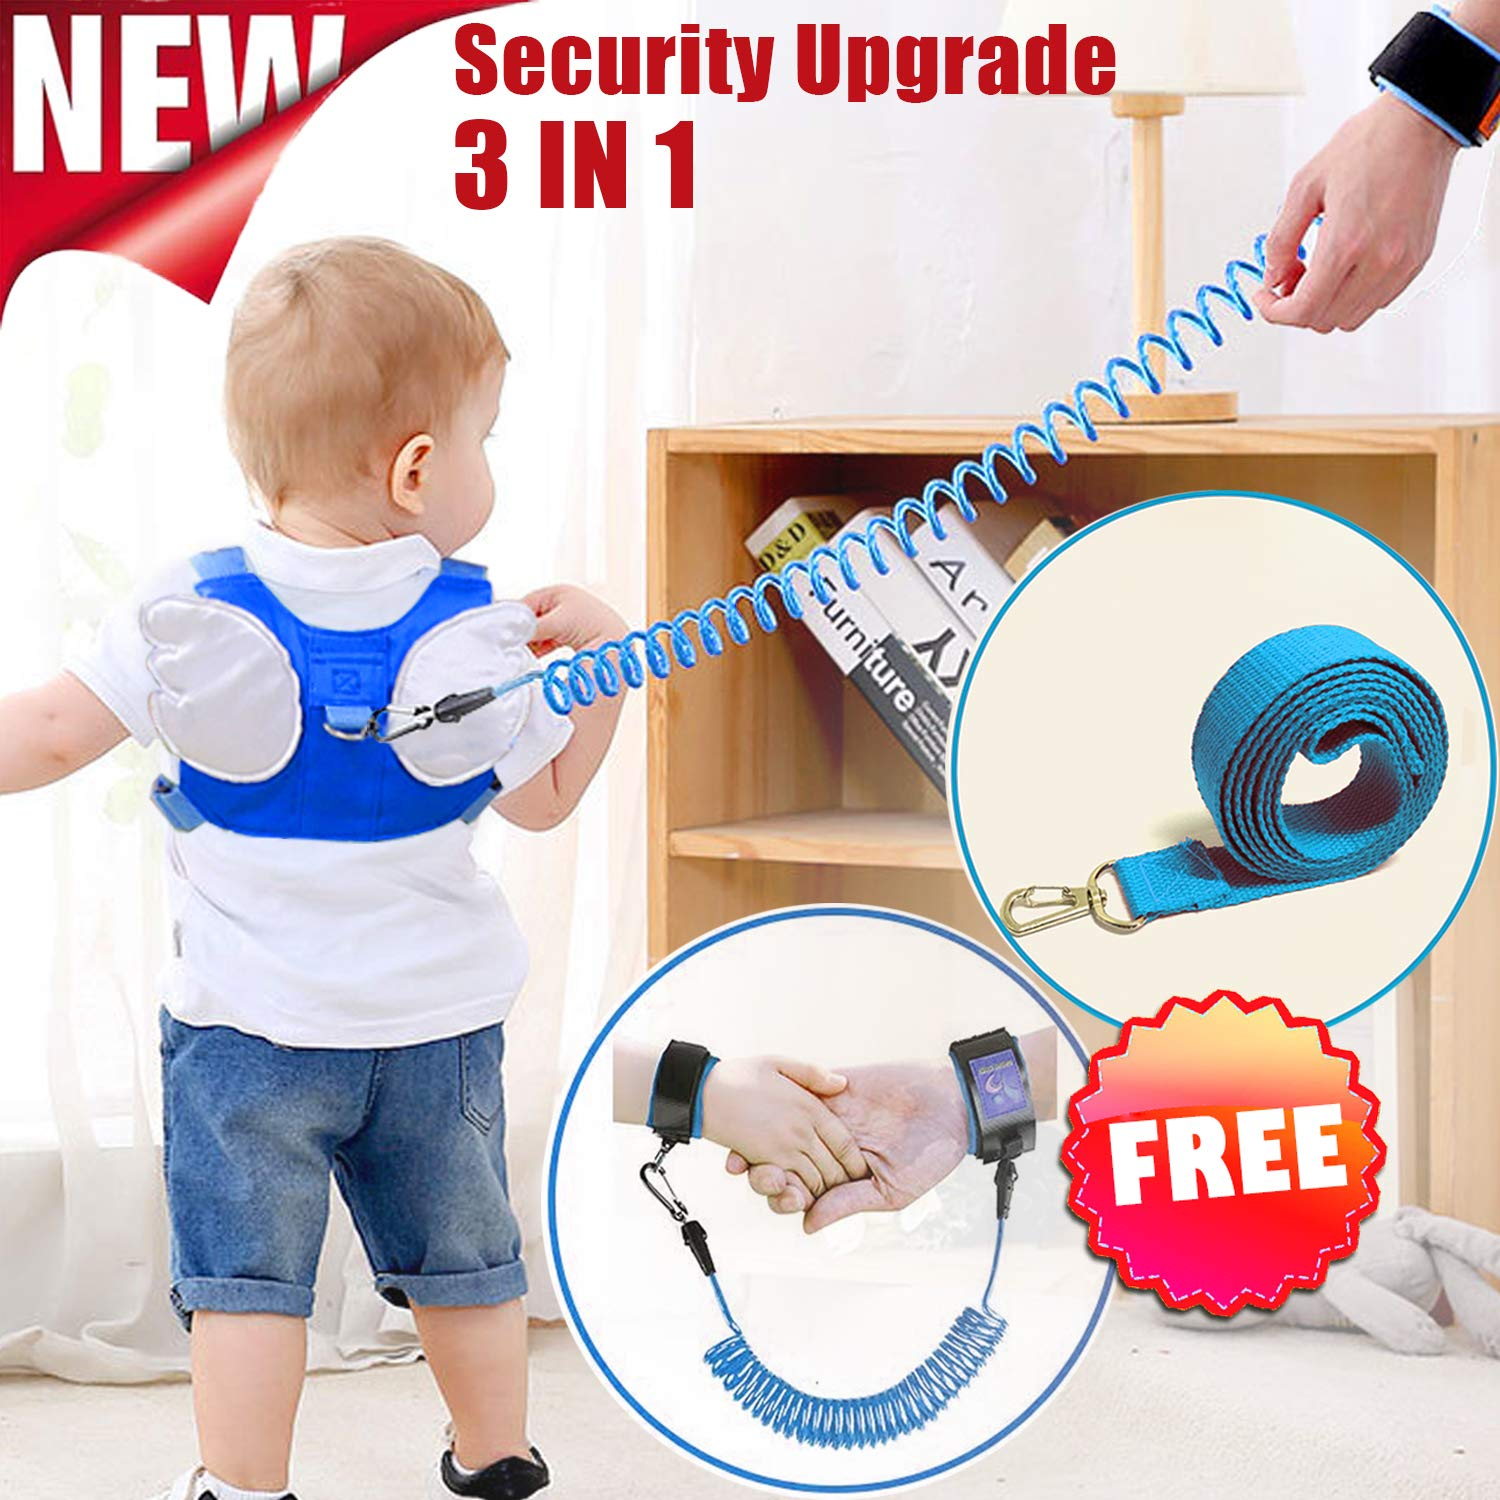 Kids Harness,Toddler Safety Harness Leashes Anti-Lost Belt Safety Walking Leash for Age 1-8 Year Old Boy Girl Safety Anti Lost Wrist Link for Toddlers Babies to Outdoor,Zoo,Mall,Hiking,Amusement Park